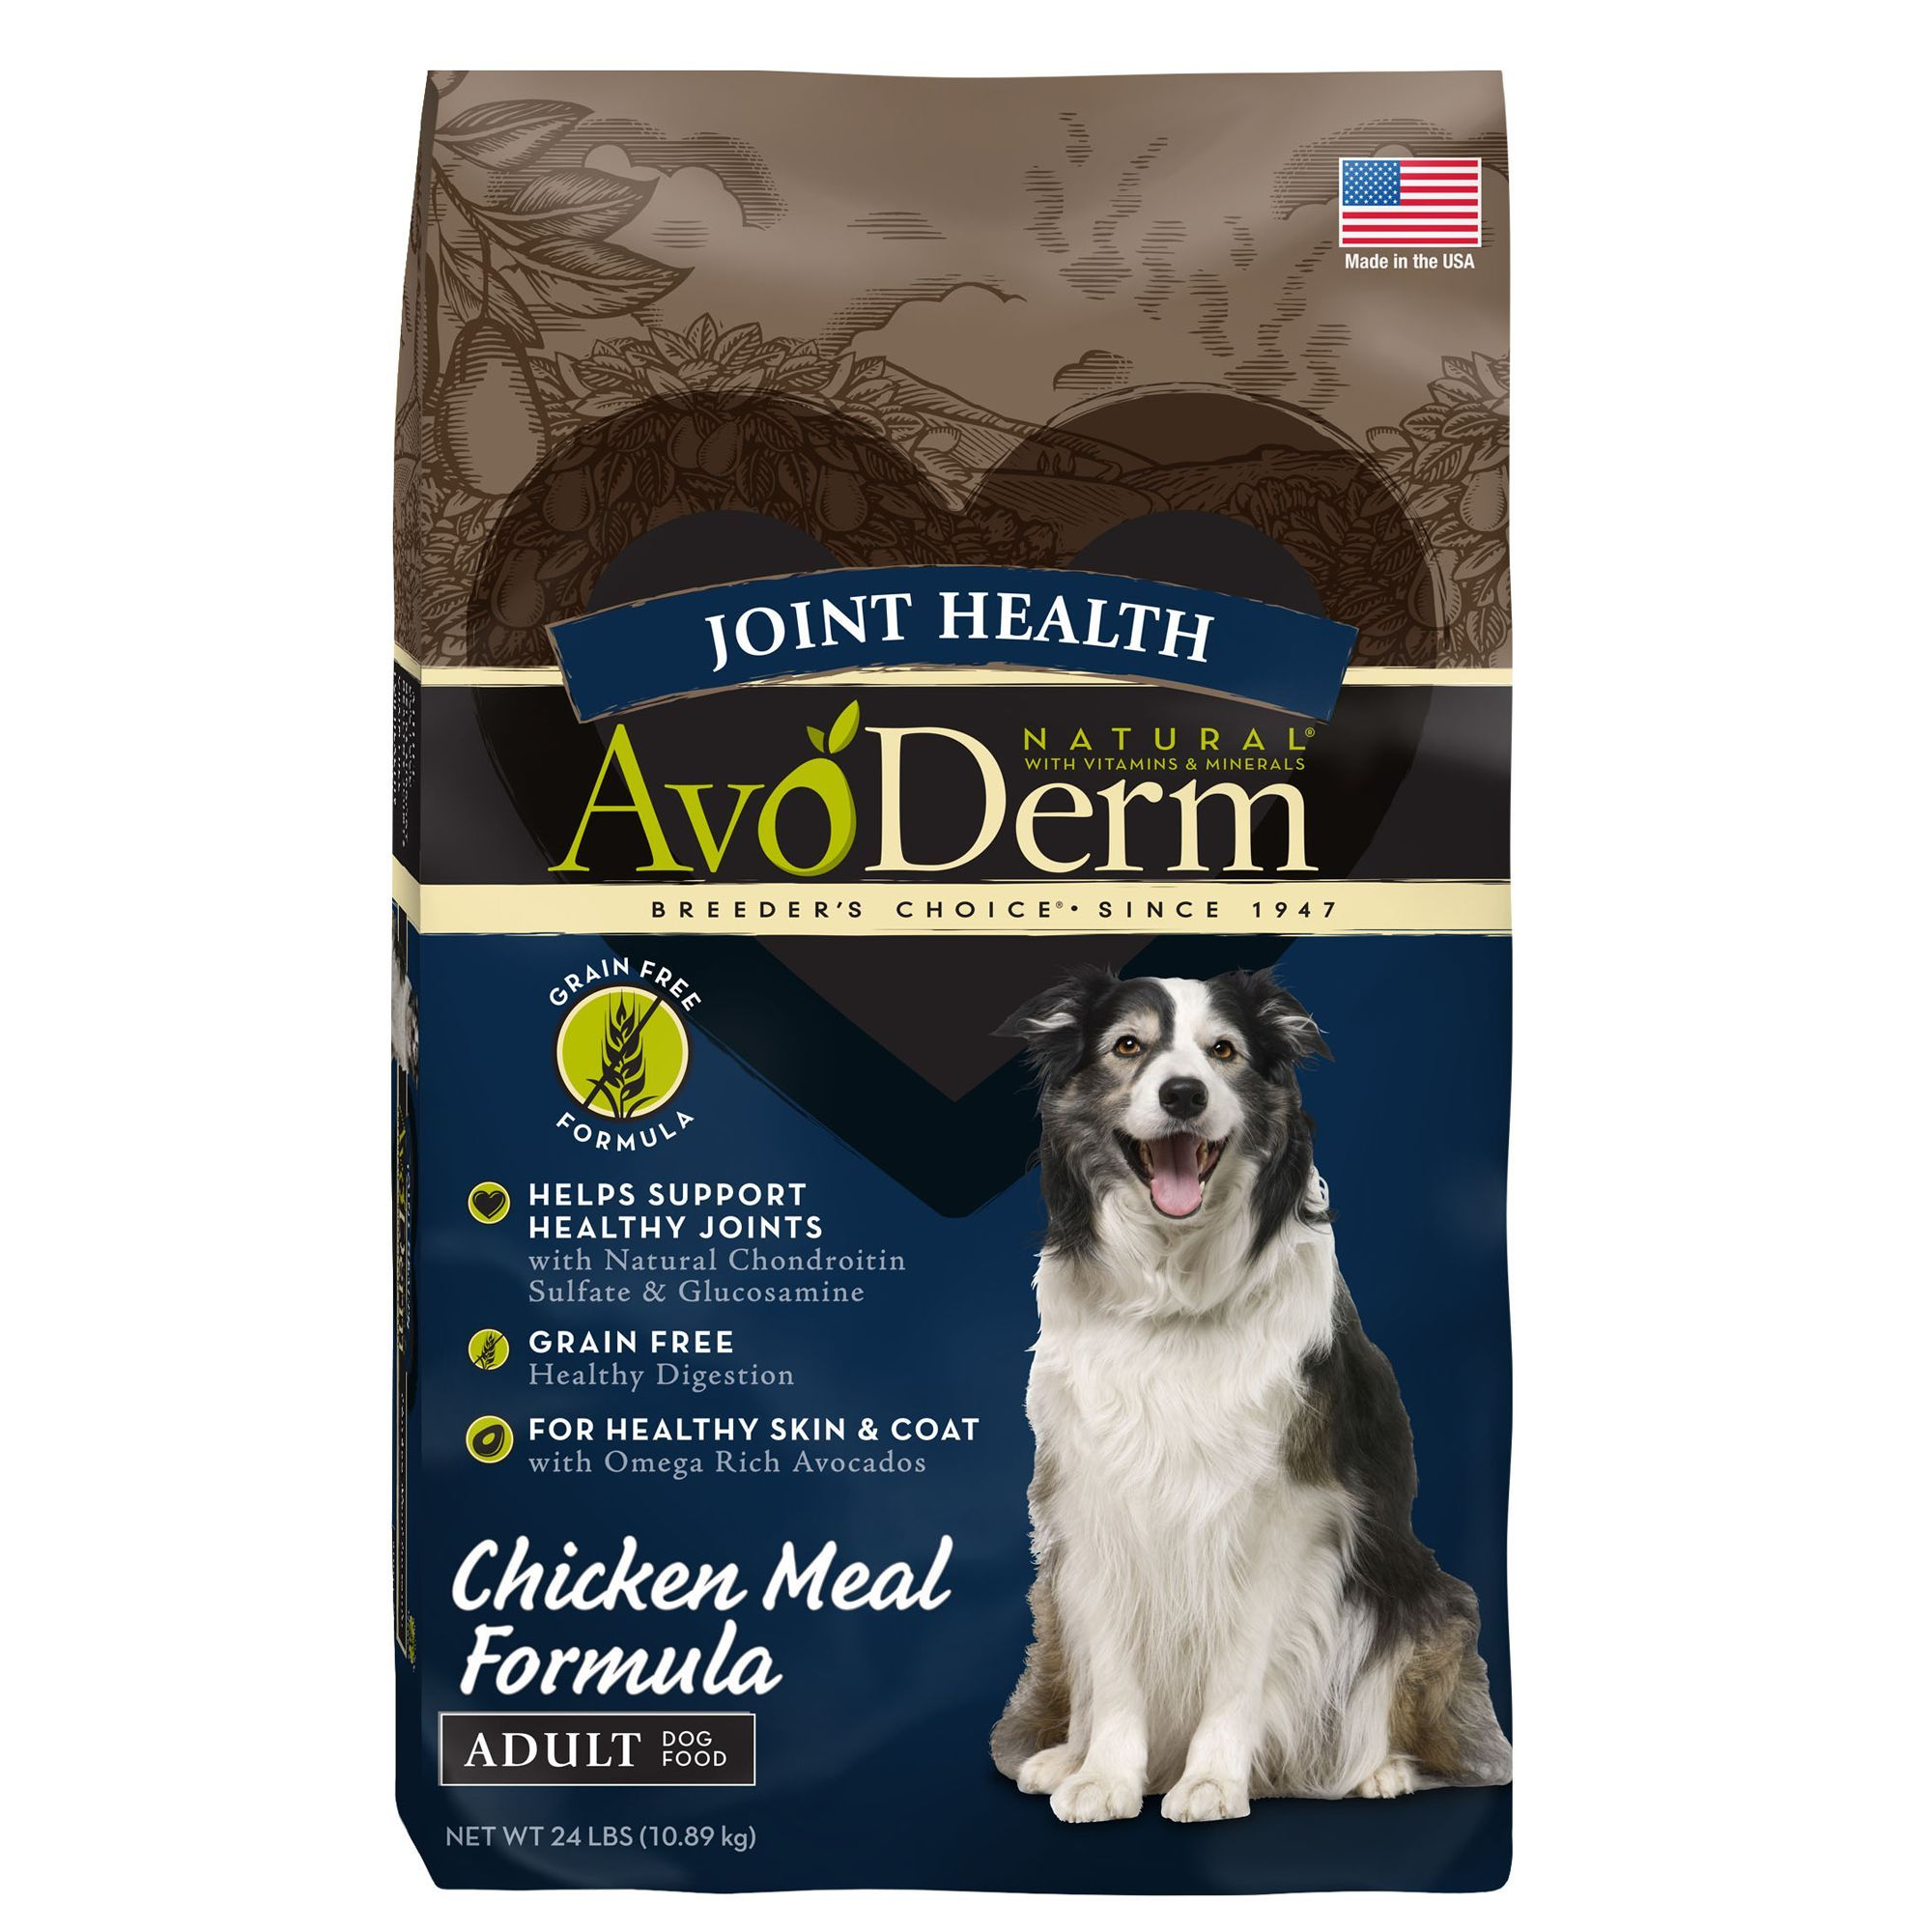 Avoderm Natural Joint Health Adult Dog Food Grain Free Chicken